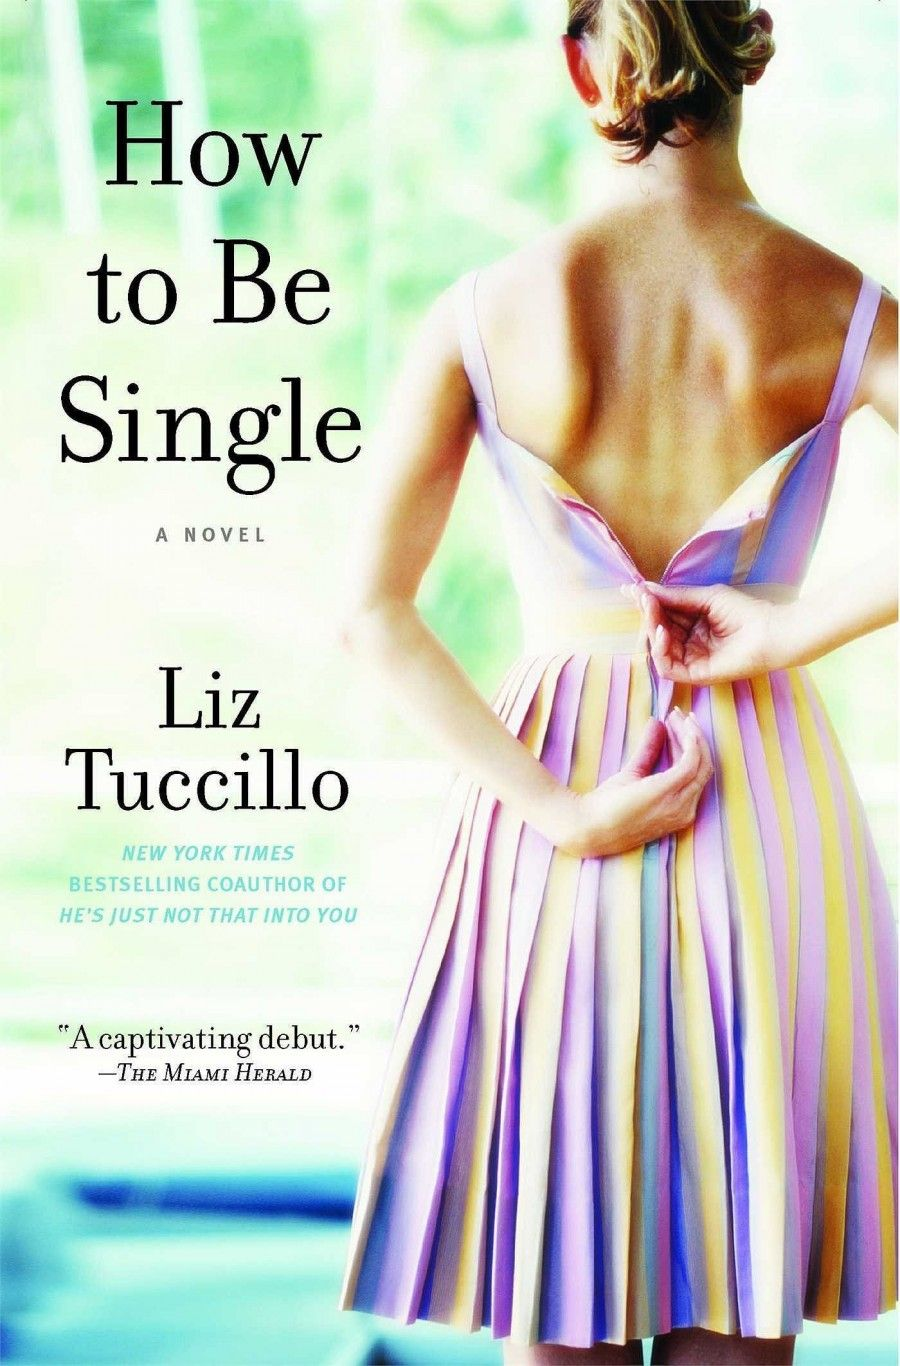 How-Single-Liz-Tuccillo